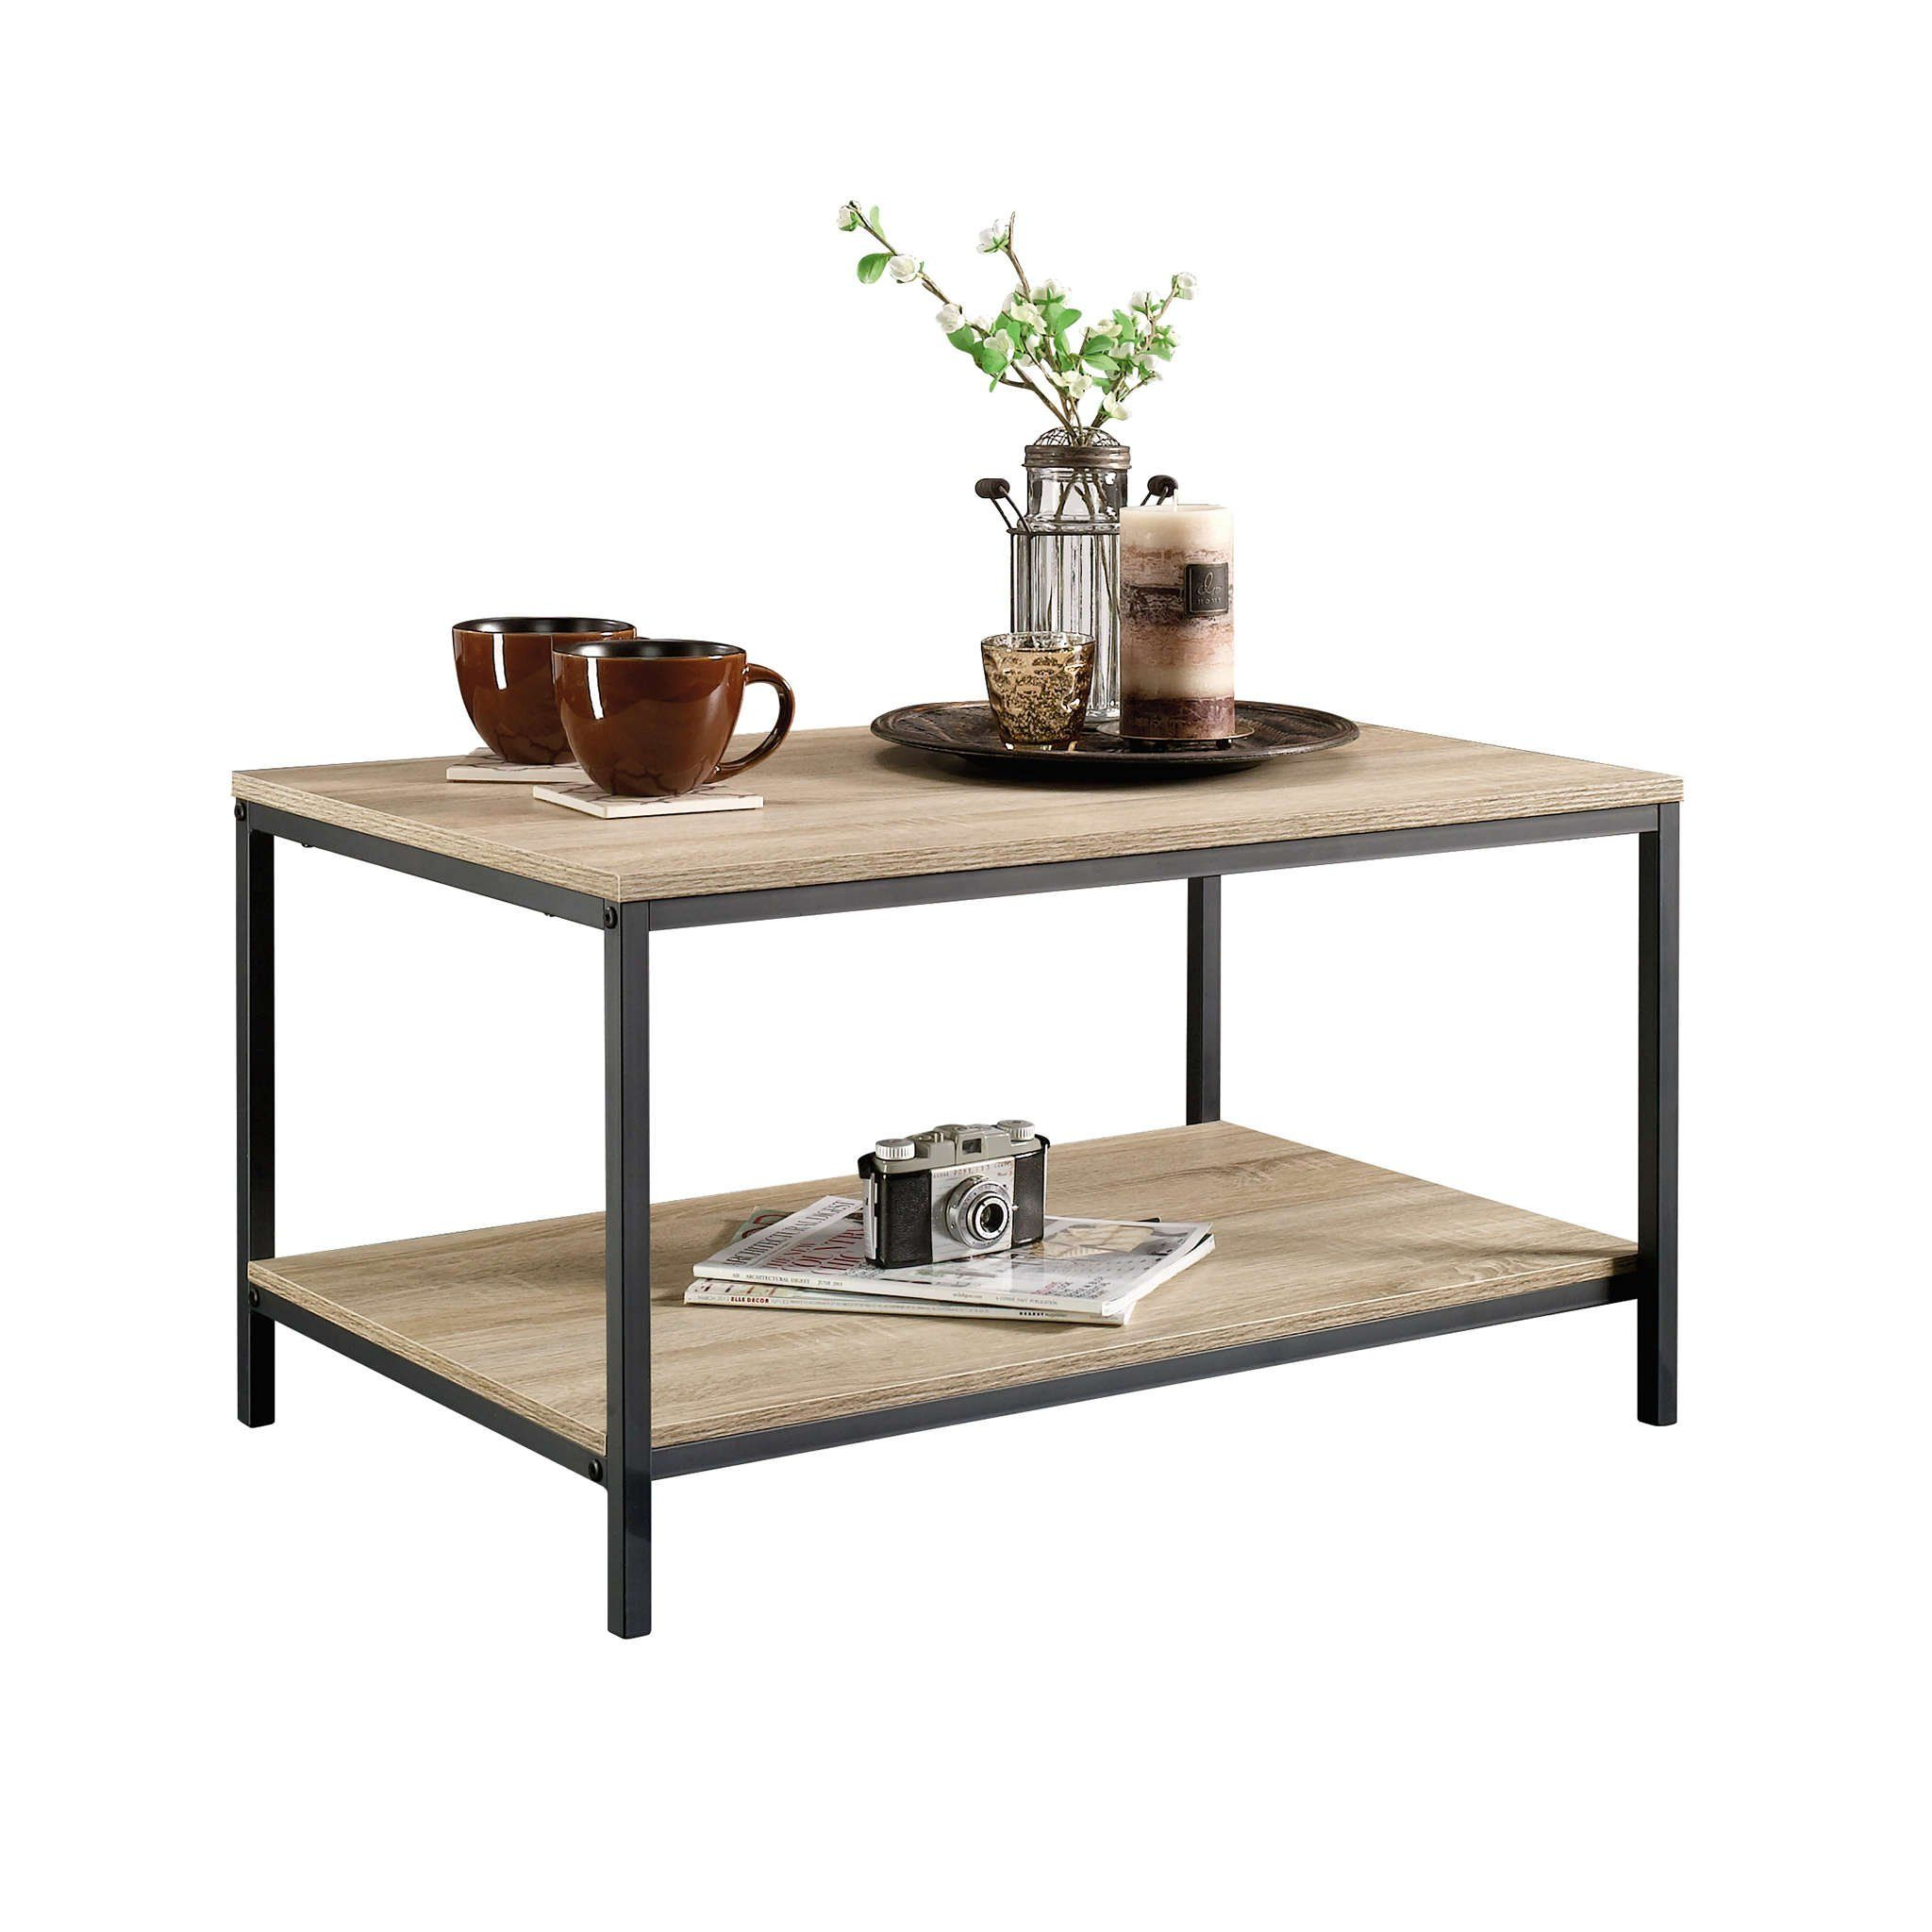 Sauder 420275 Coffee Table Furniture Characters Oak Click Image To Review More Details Thi Coffee Table Furniture Cool Coffee Tables Coffee Table Rectangle [ 2048 x 2048 Pixel ]